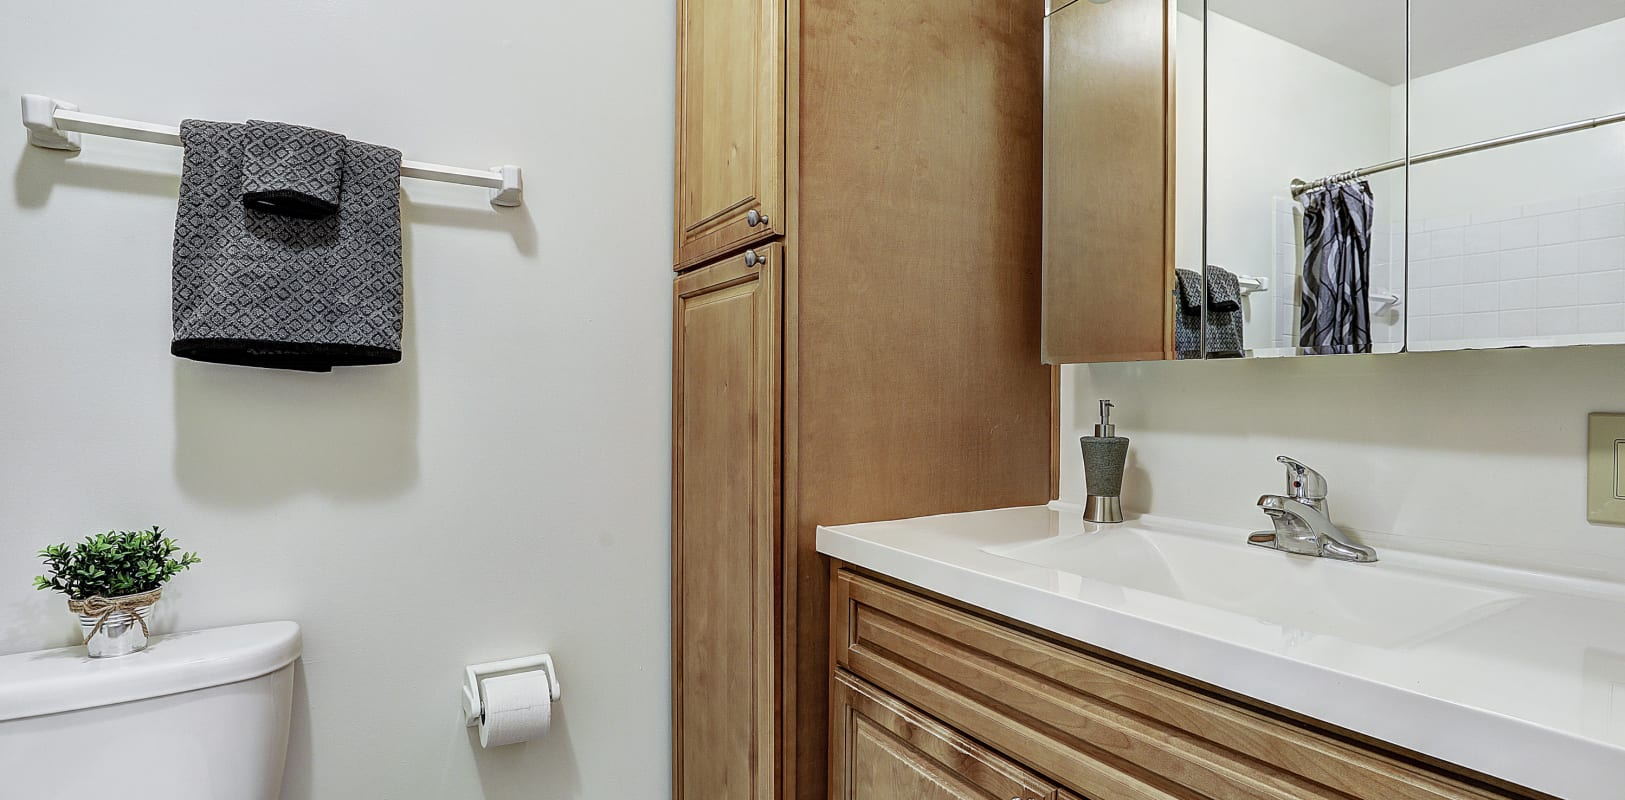 Bathroom with cabinets for storage at Penn Crest Apartments in Allentown, Pennsylvania